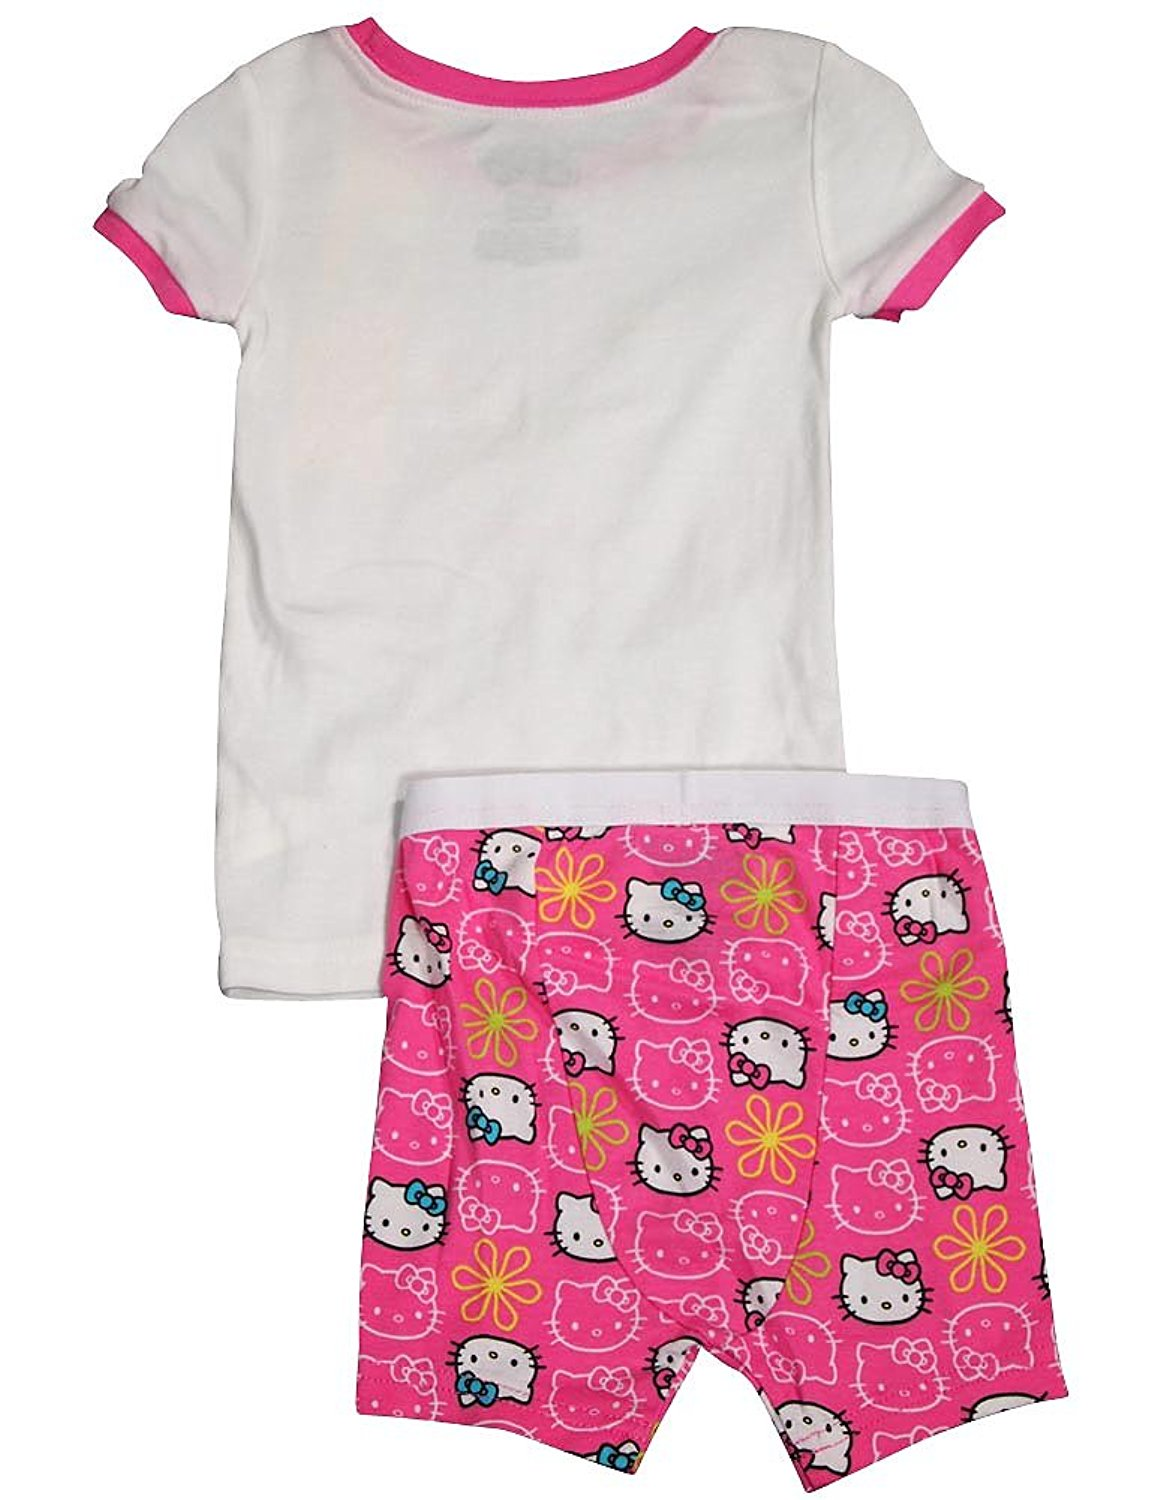 f3f20dfb7 Hello Kitty - Baby Girls Short Sleeve Hello Kitty Shorty Pajamas ...